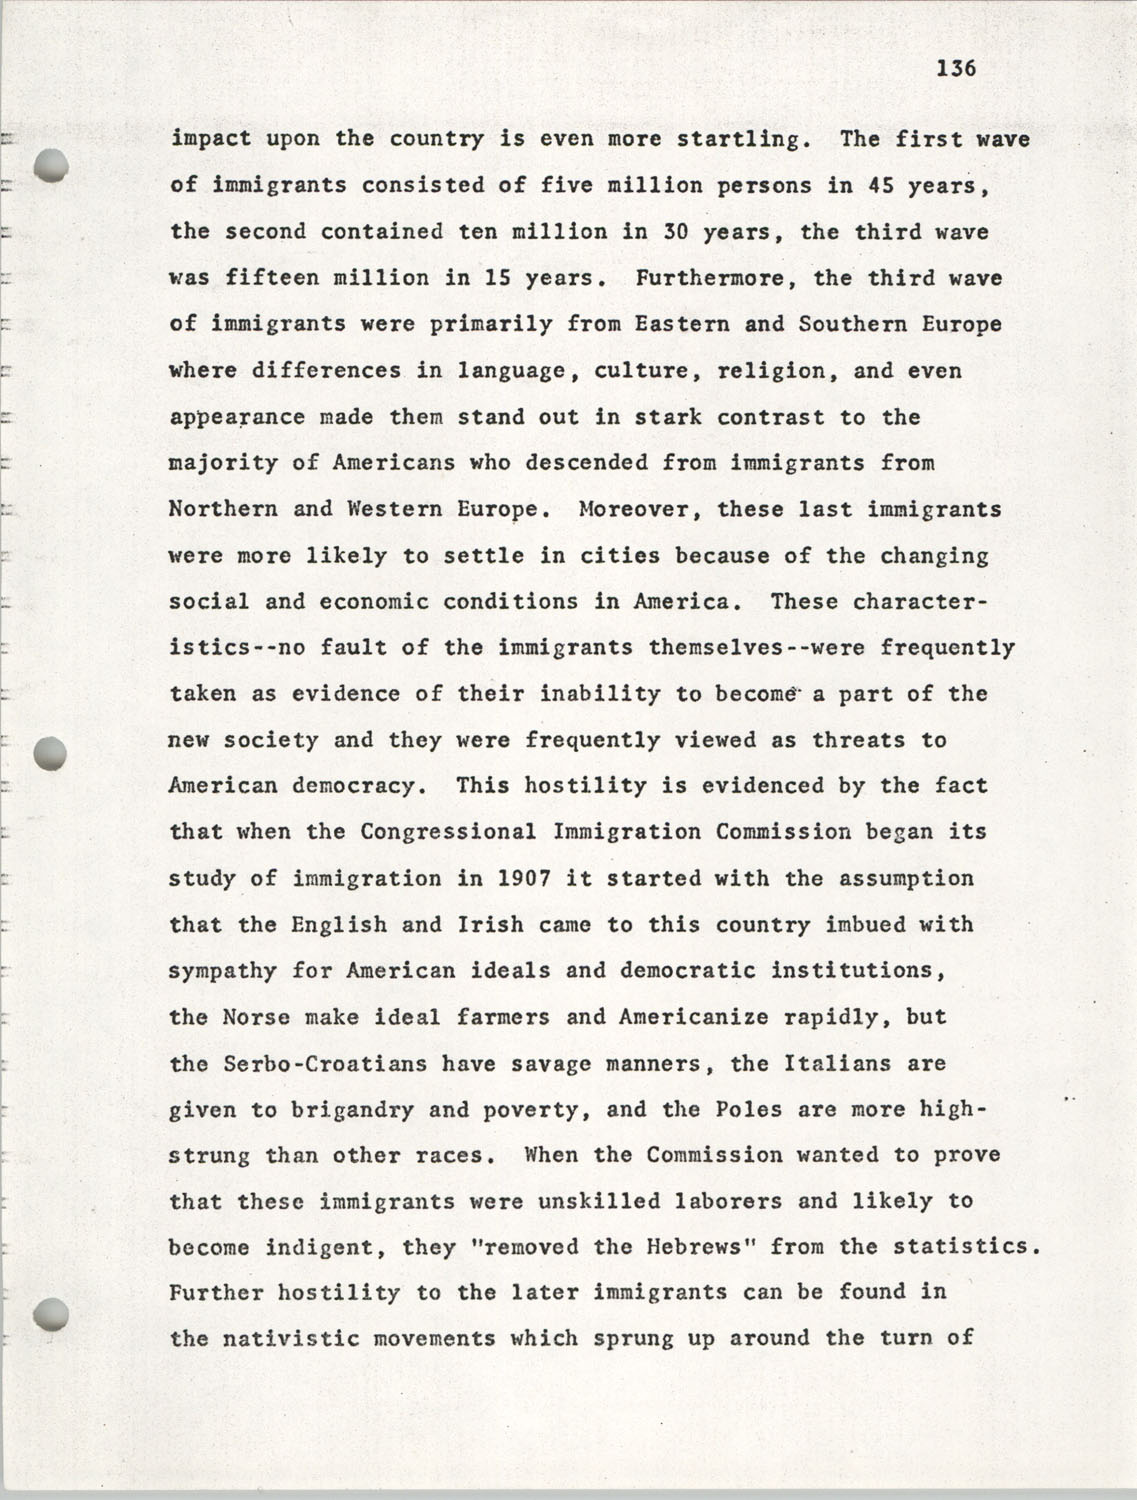 Citizen Participation. Democracy and Social Change, December 1, 1969, Page 136